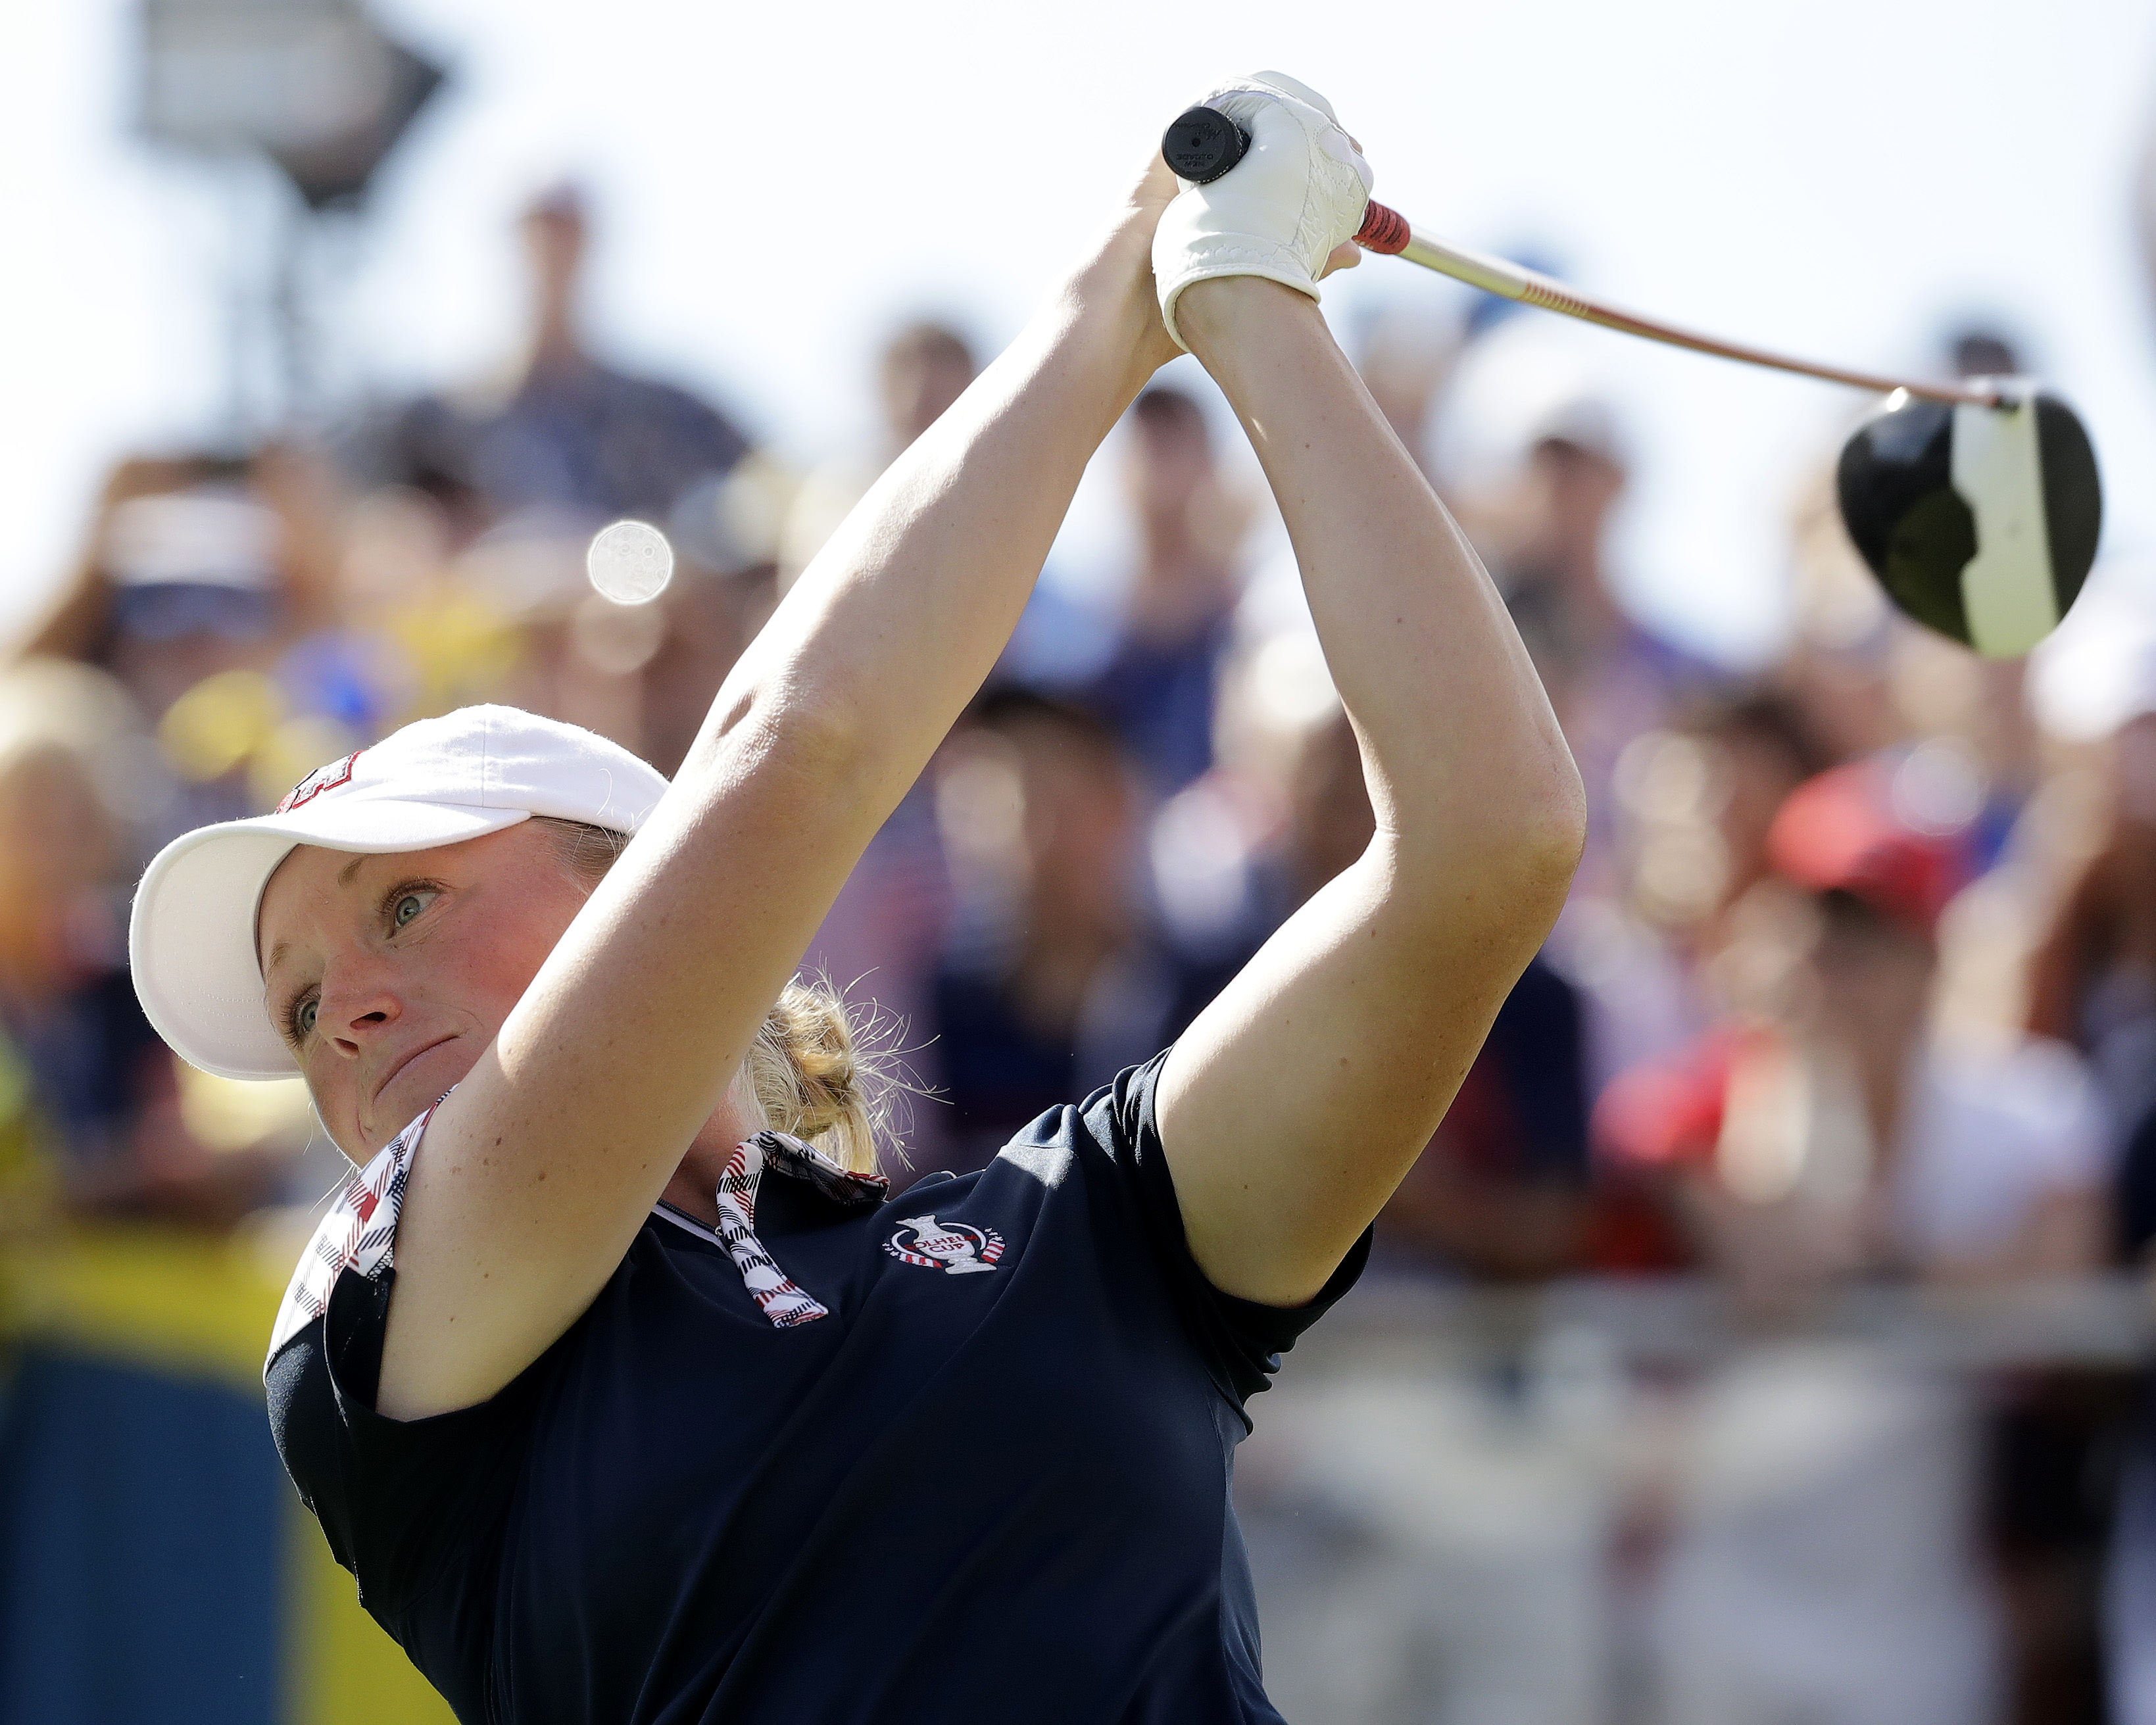 United States' Stacy Lewis tees on the first hole during her singles match against Europe's Catriona Matthew, of Scotland, in the Solheim Cup golf tournament, Sunday, Aug. 20, 2017, in West Des Moines, Iowa. (AP Photo/Charlie Riedel)